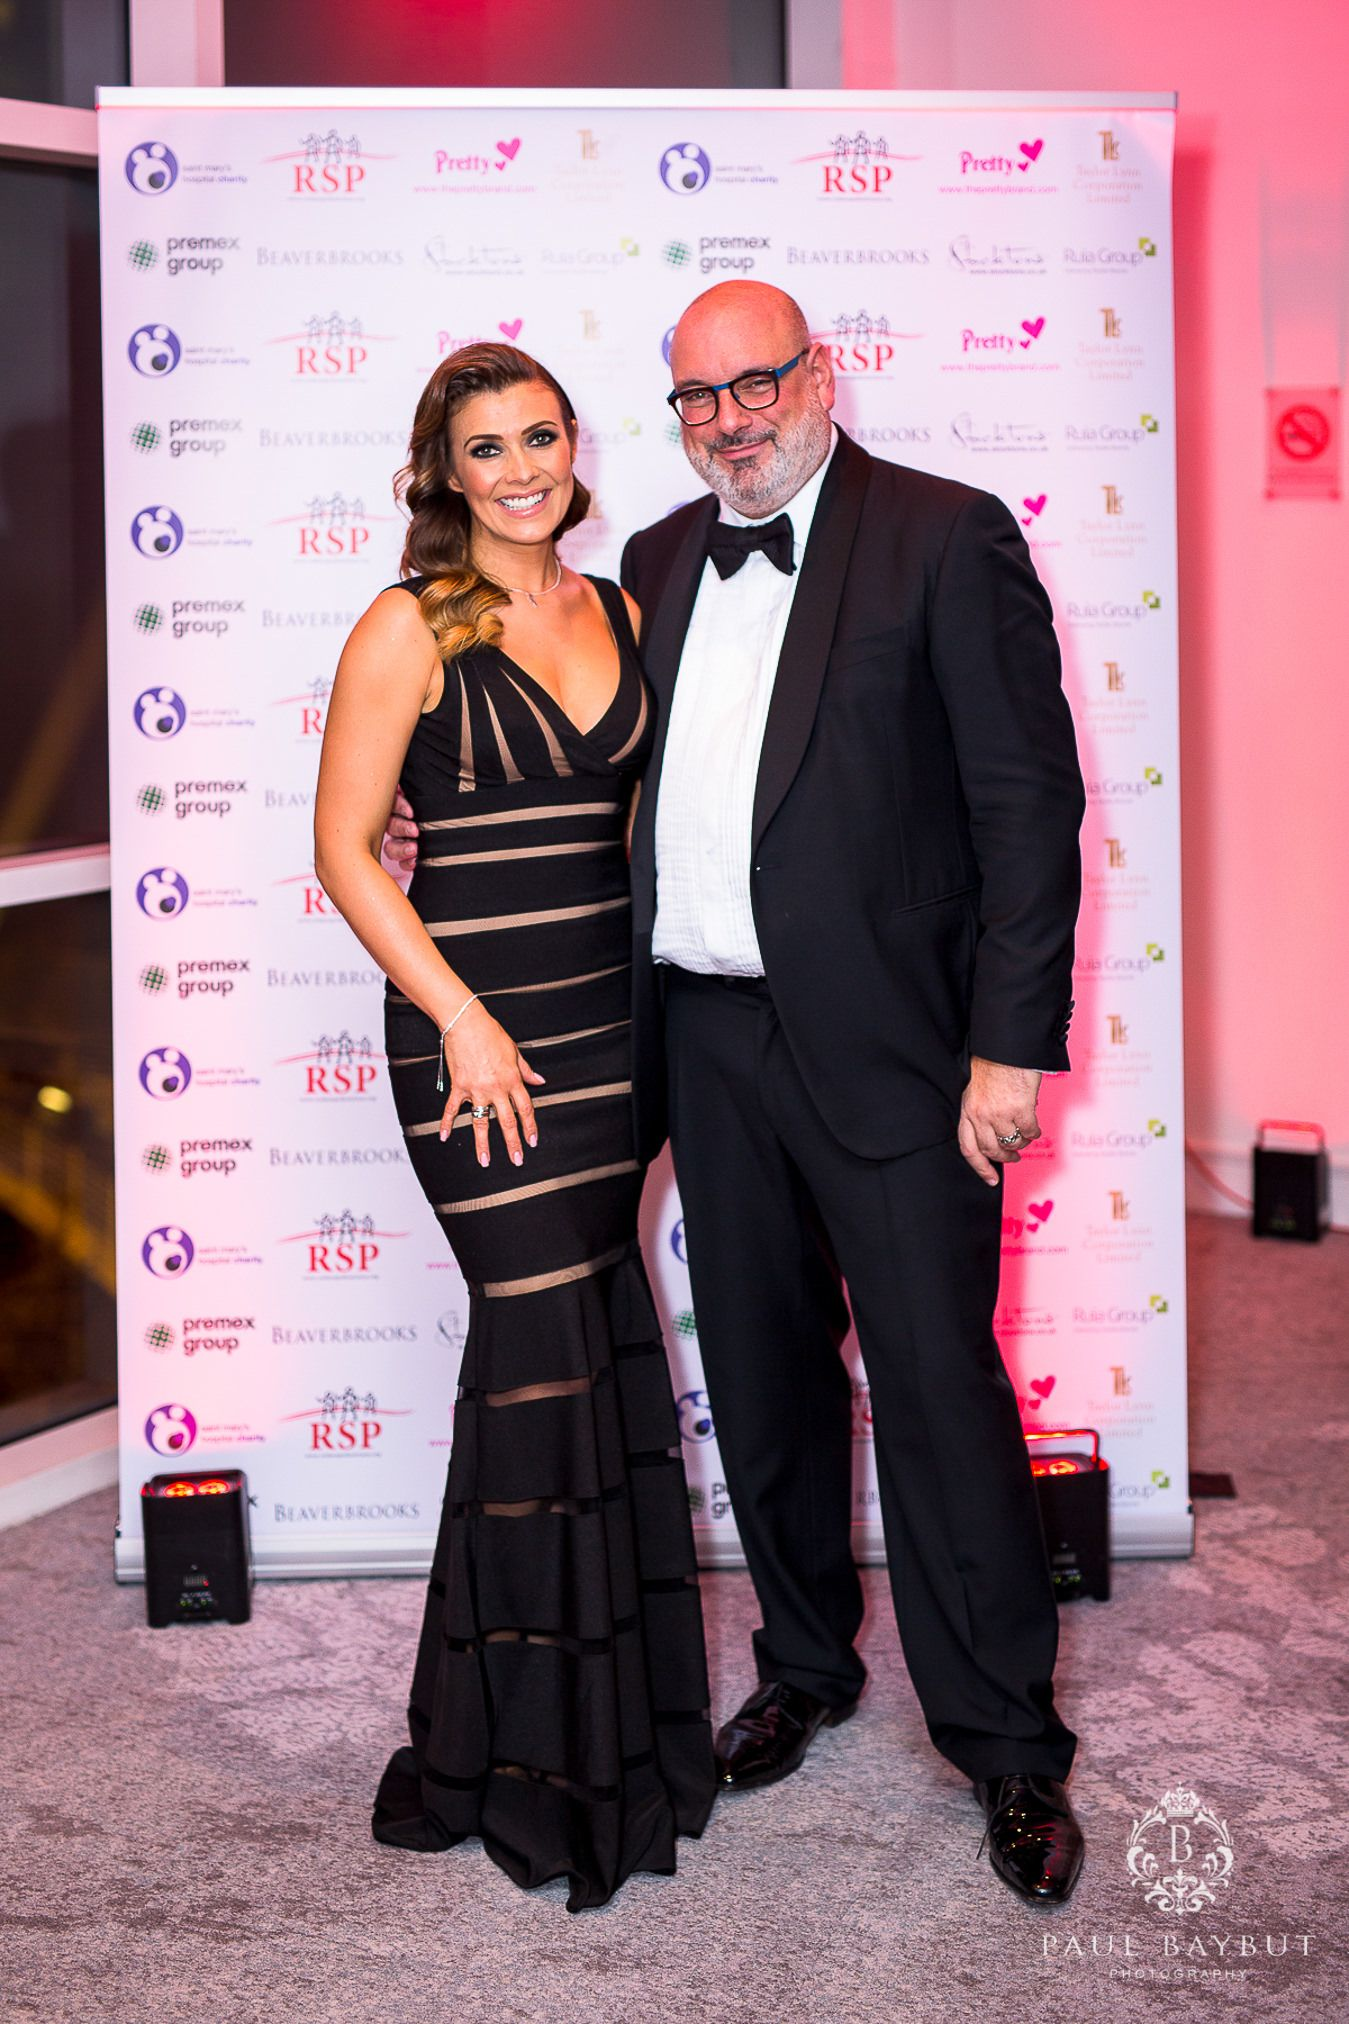 Kim Marsh and event organiser pose for photographs at a Manchester Charity event evening